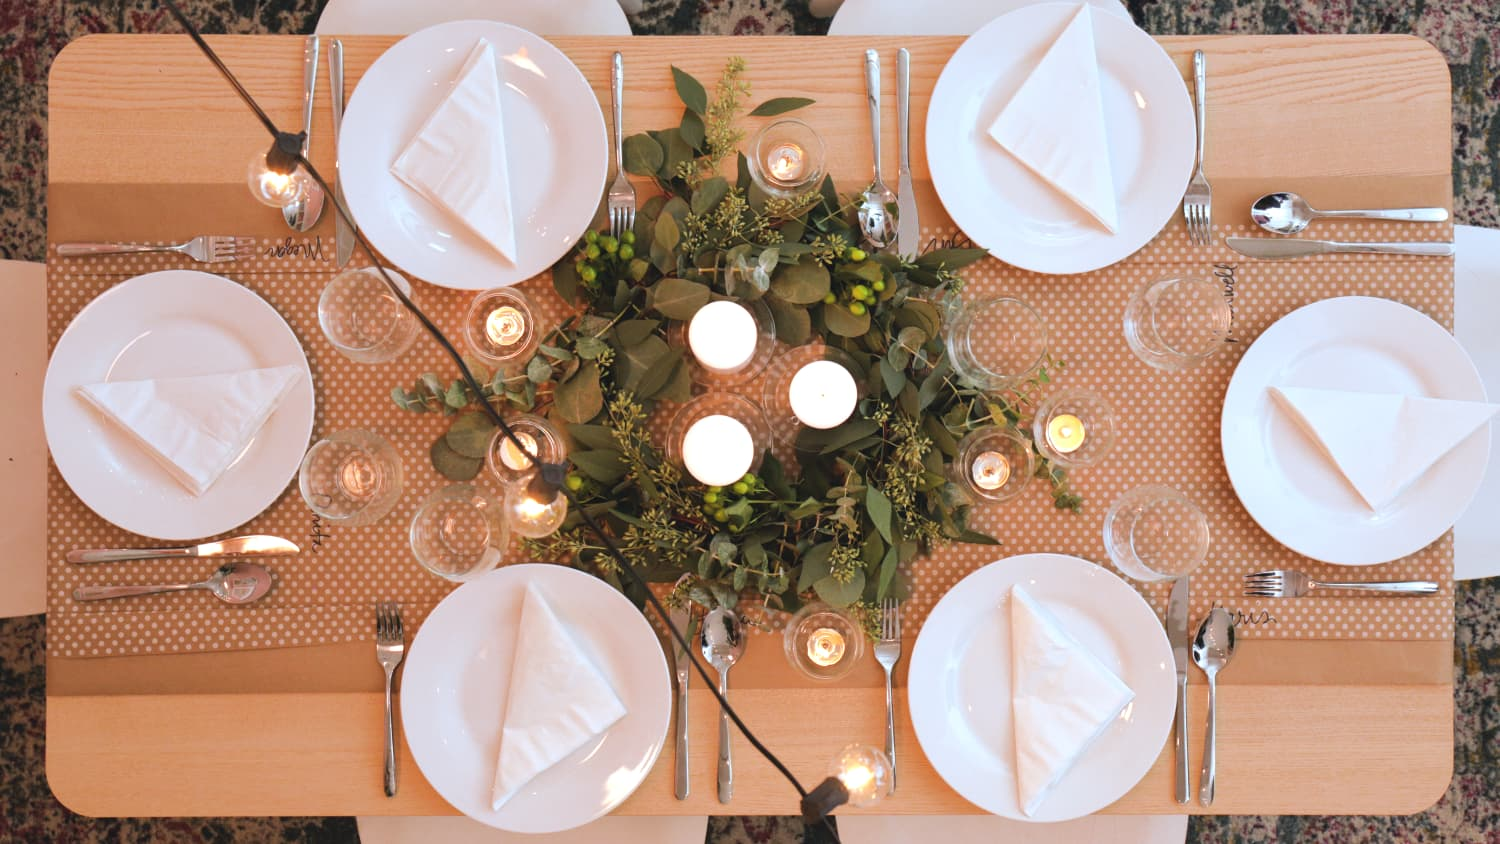 I Raided the Dollar Section to Fake This Fancy-Looking Dinner Party